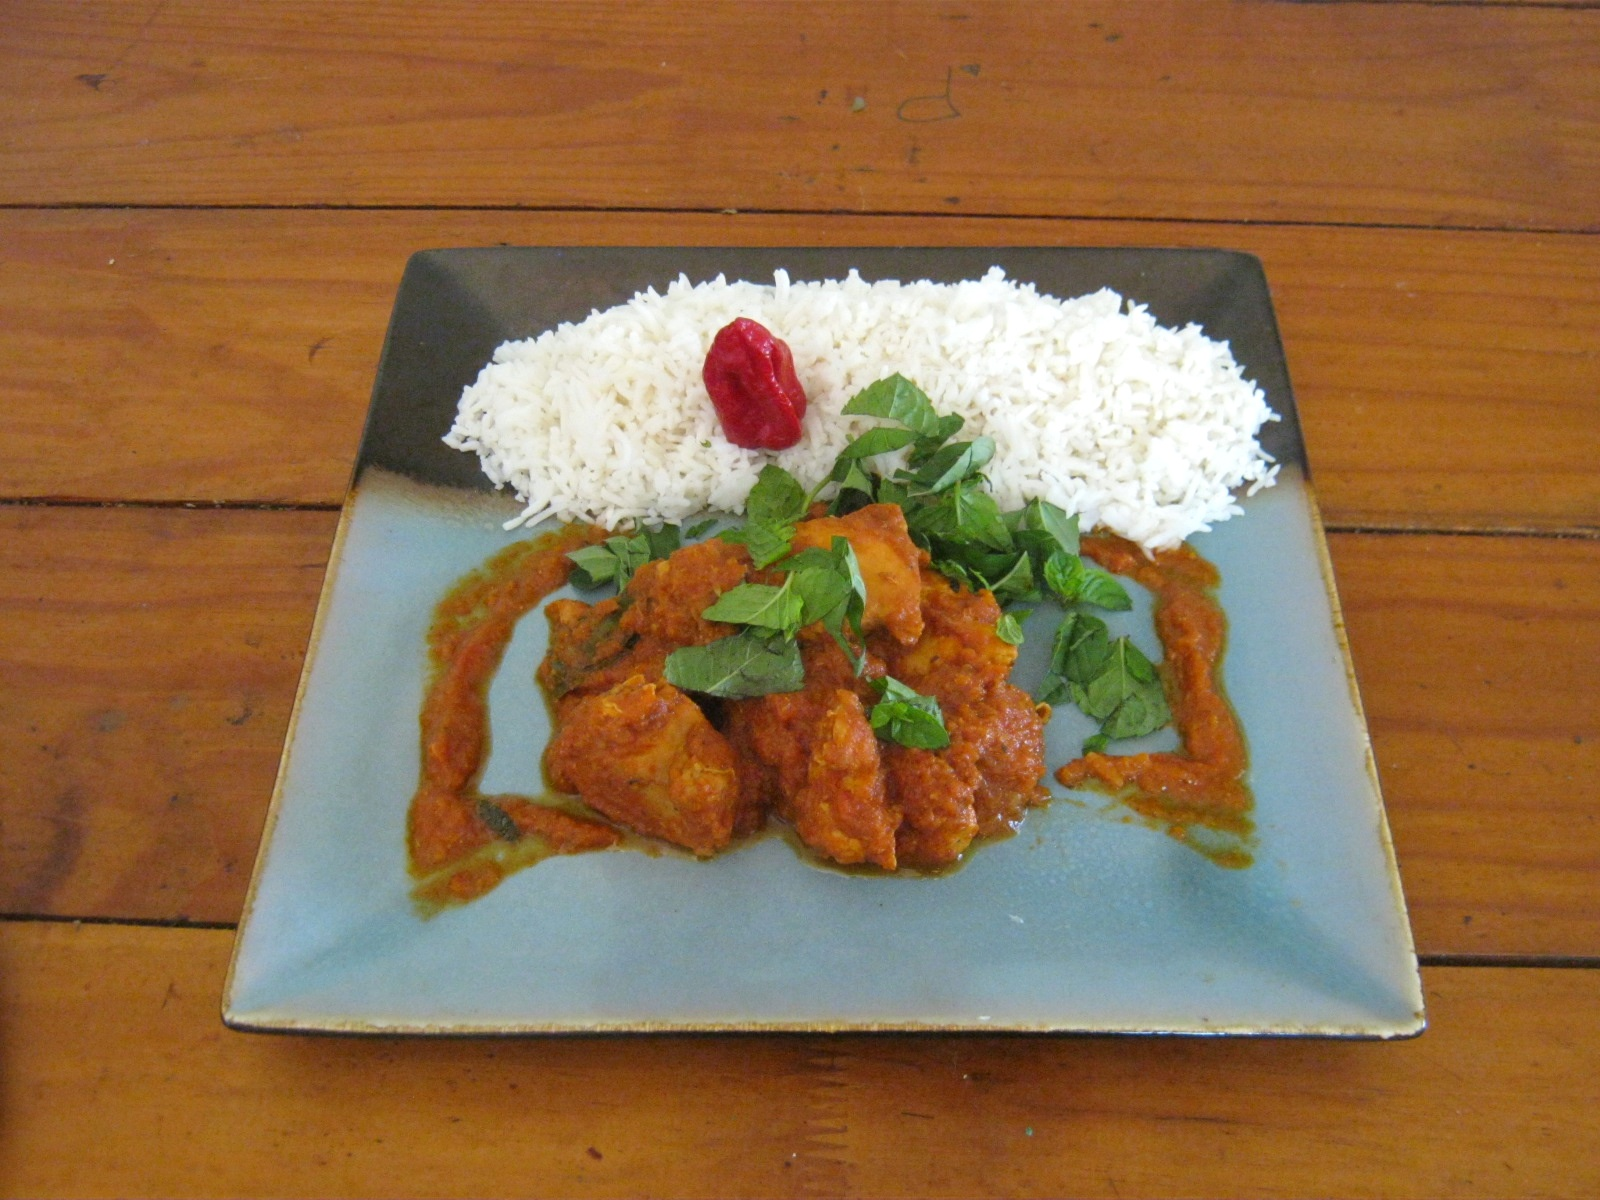 Madras chicken curry and rice on a plate